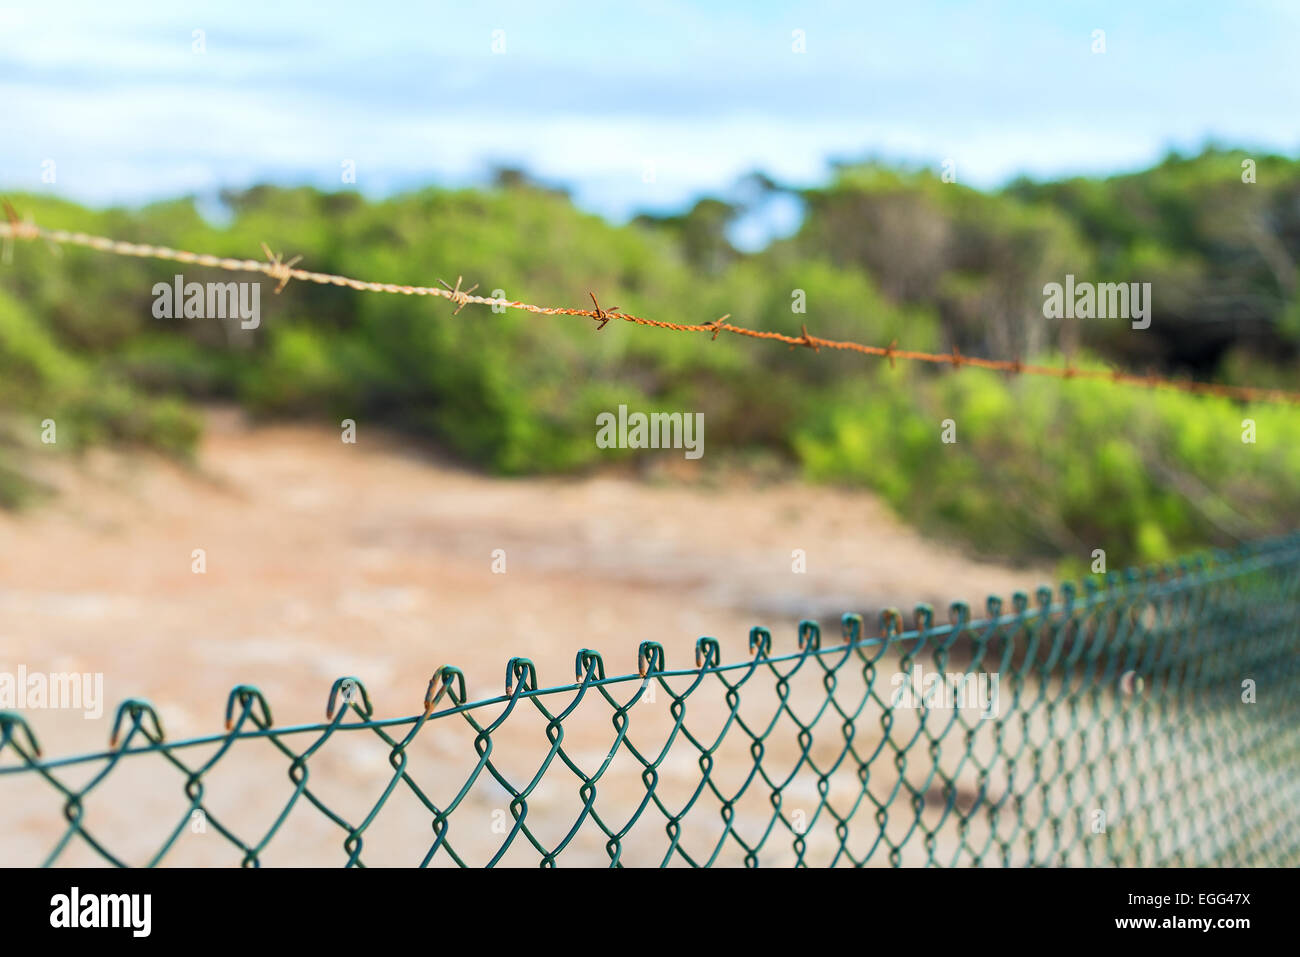 Fence with barbed wire under blue sky. - Stock Image